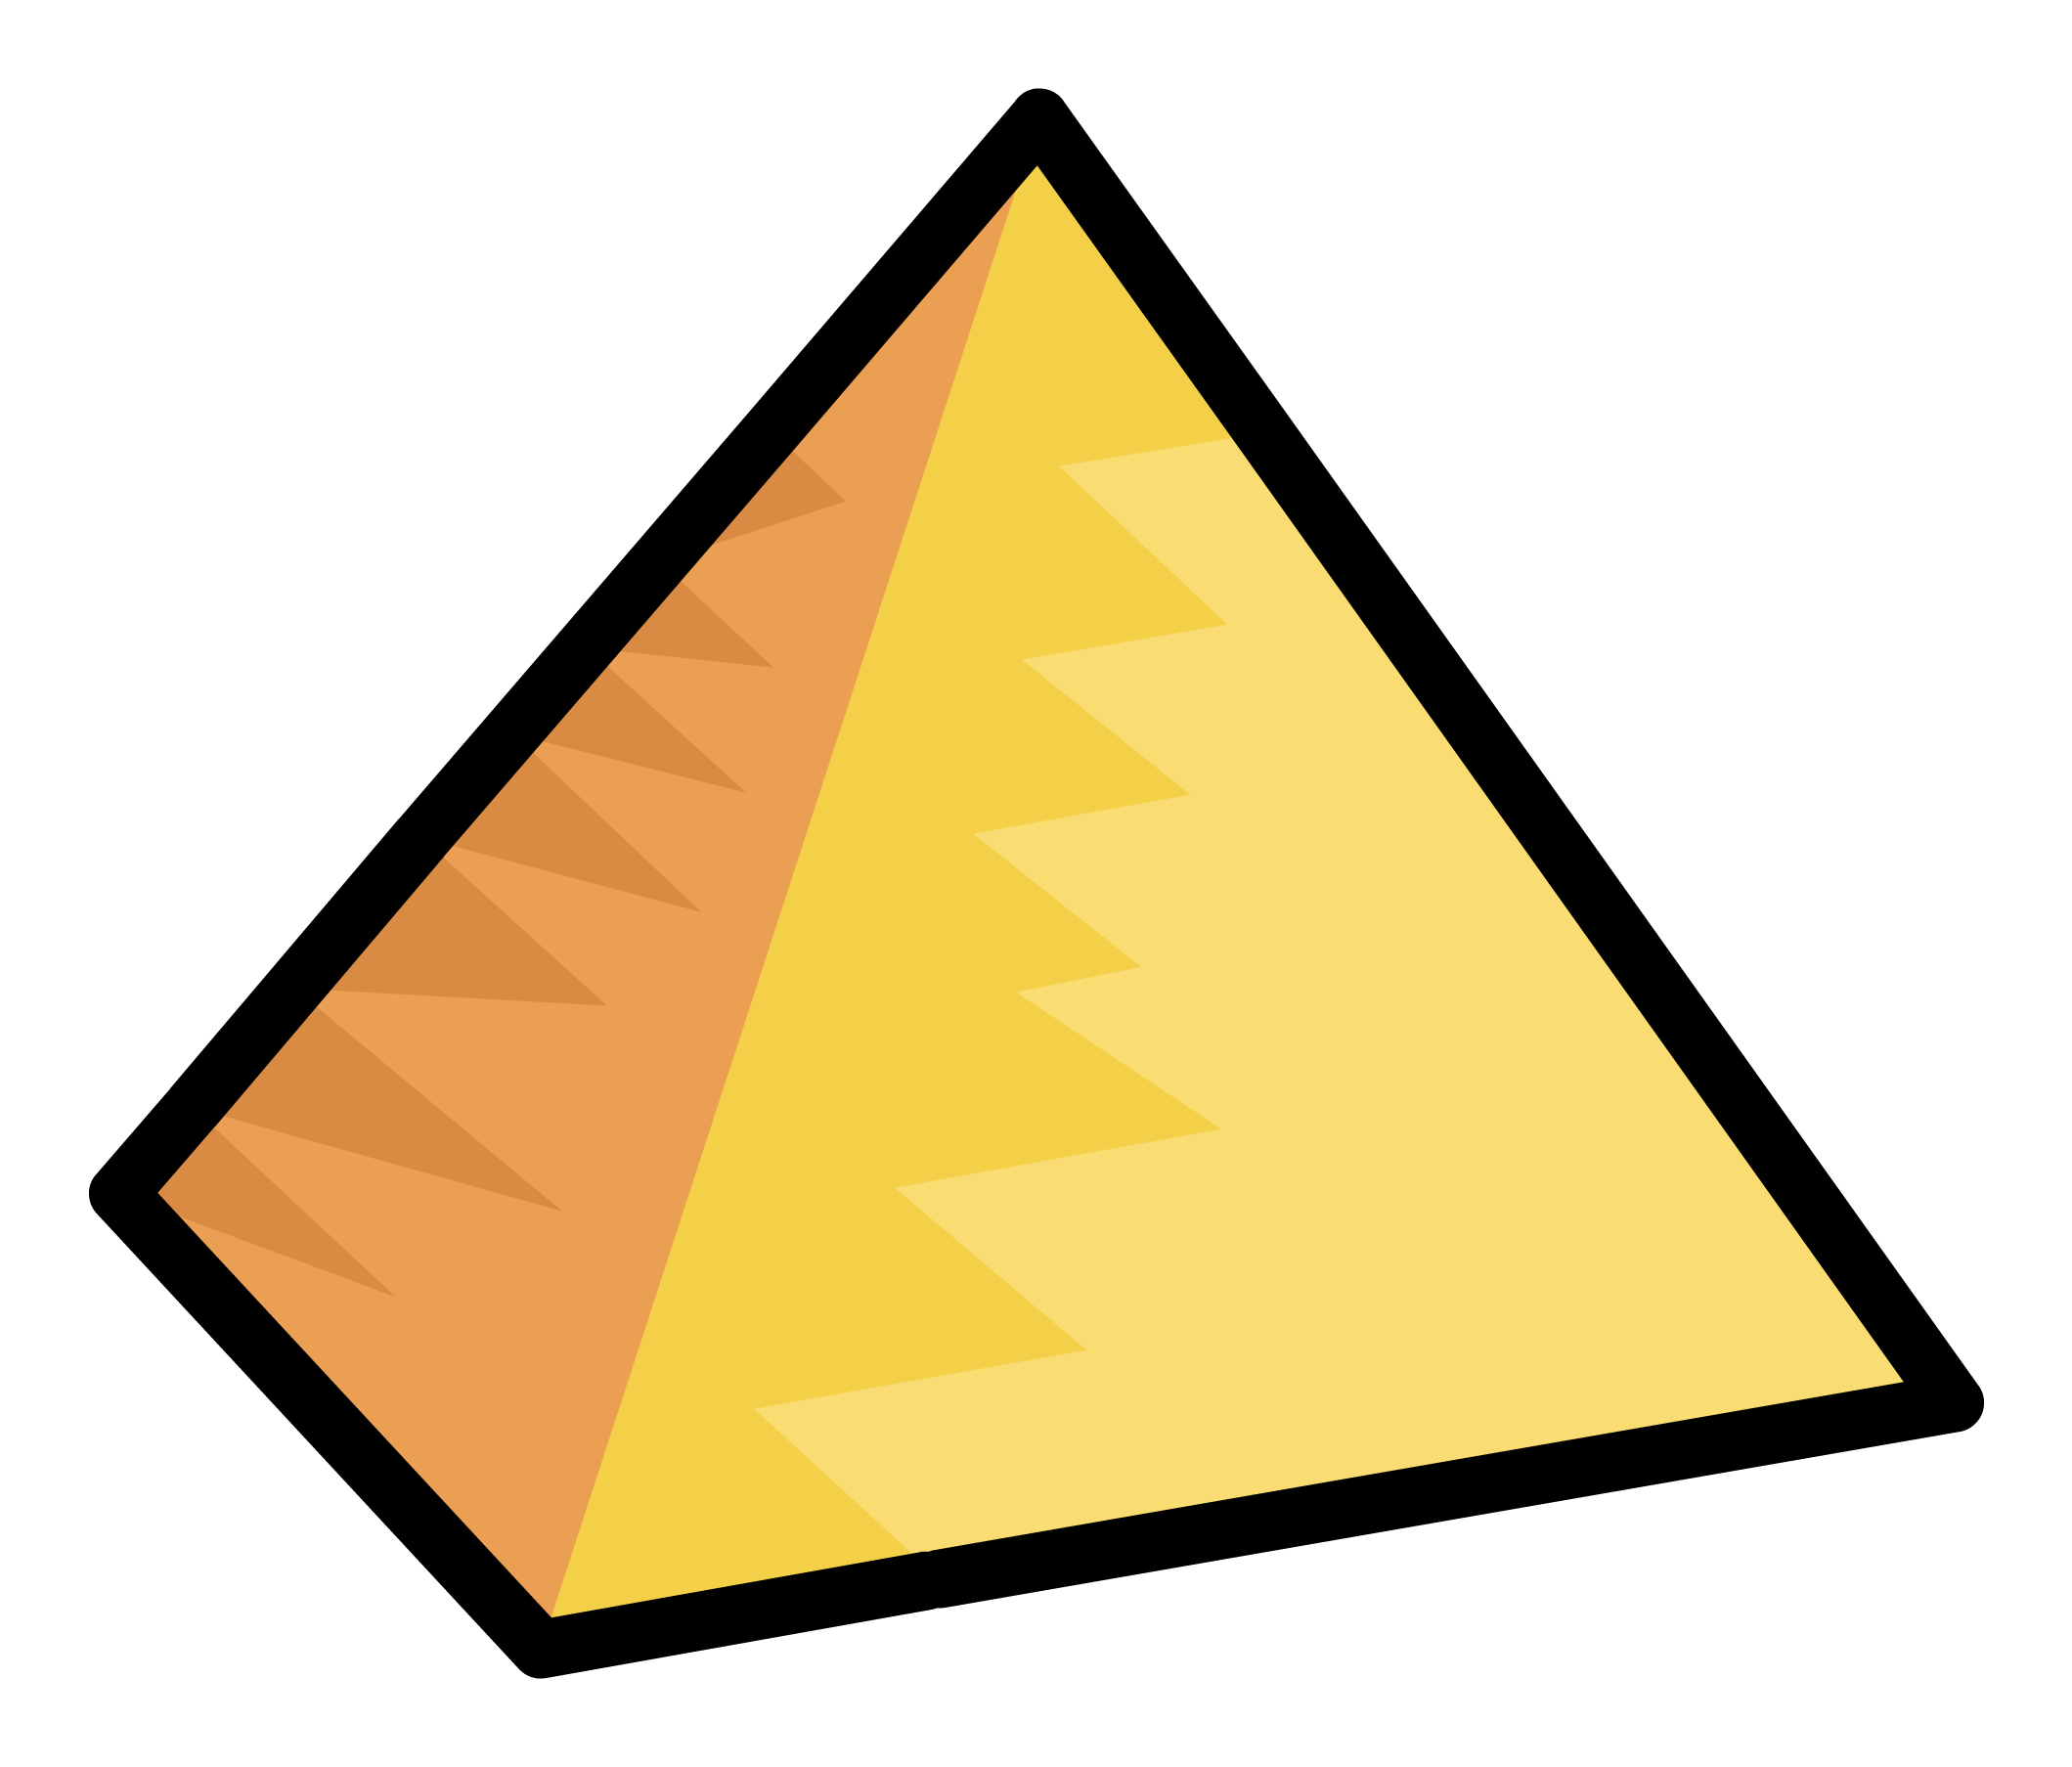 Pyramid clipart png. Image pin club penguin